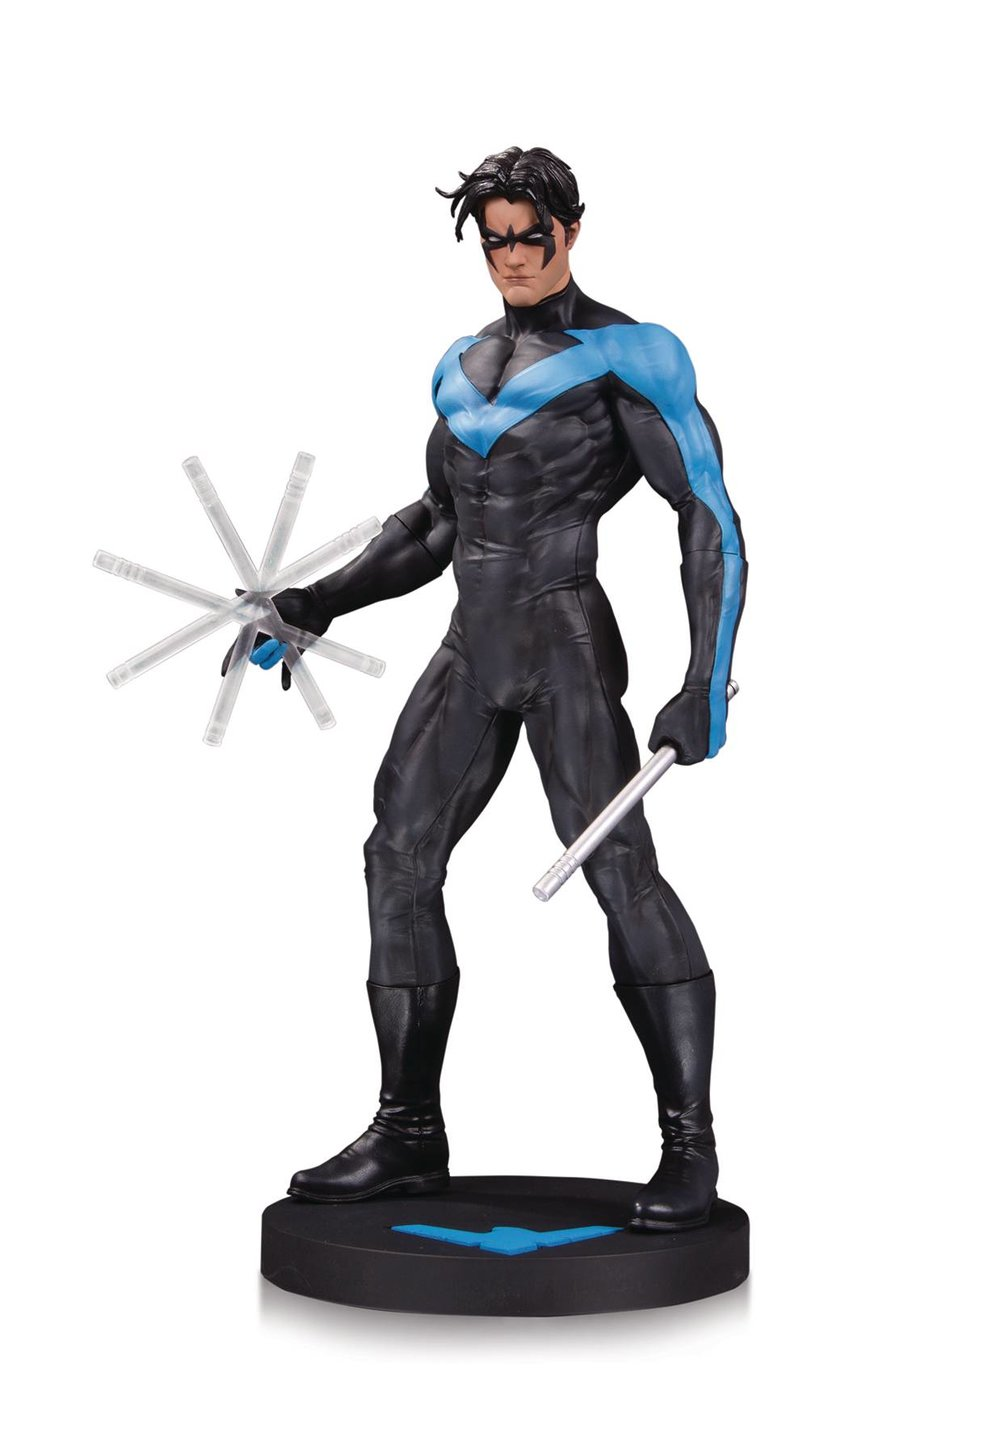 DC DESIGNER SER NIGHTWING BY JIM LEE STATUE.jpg